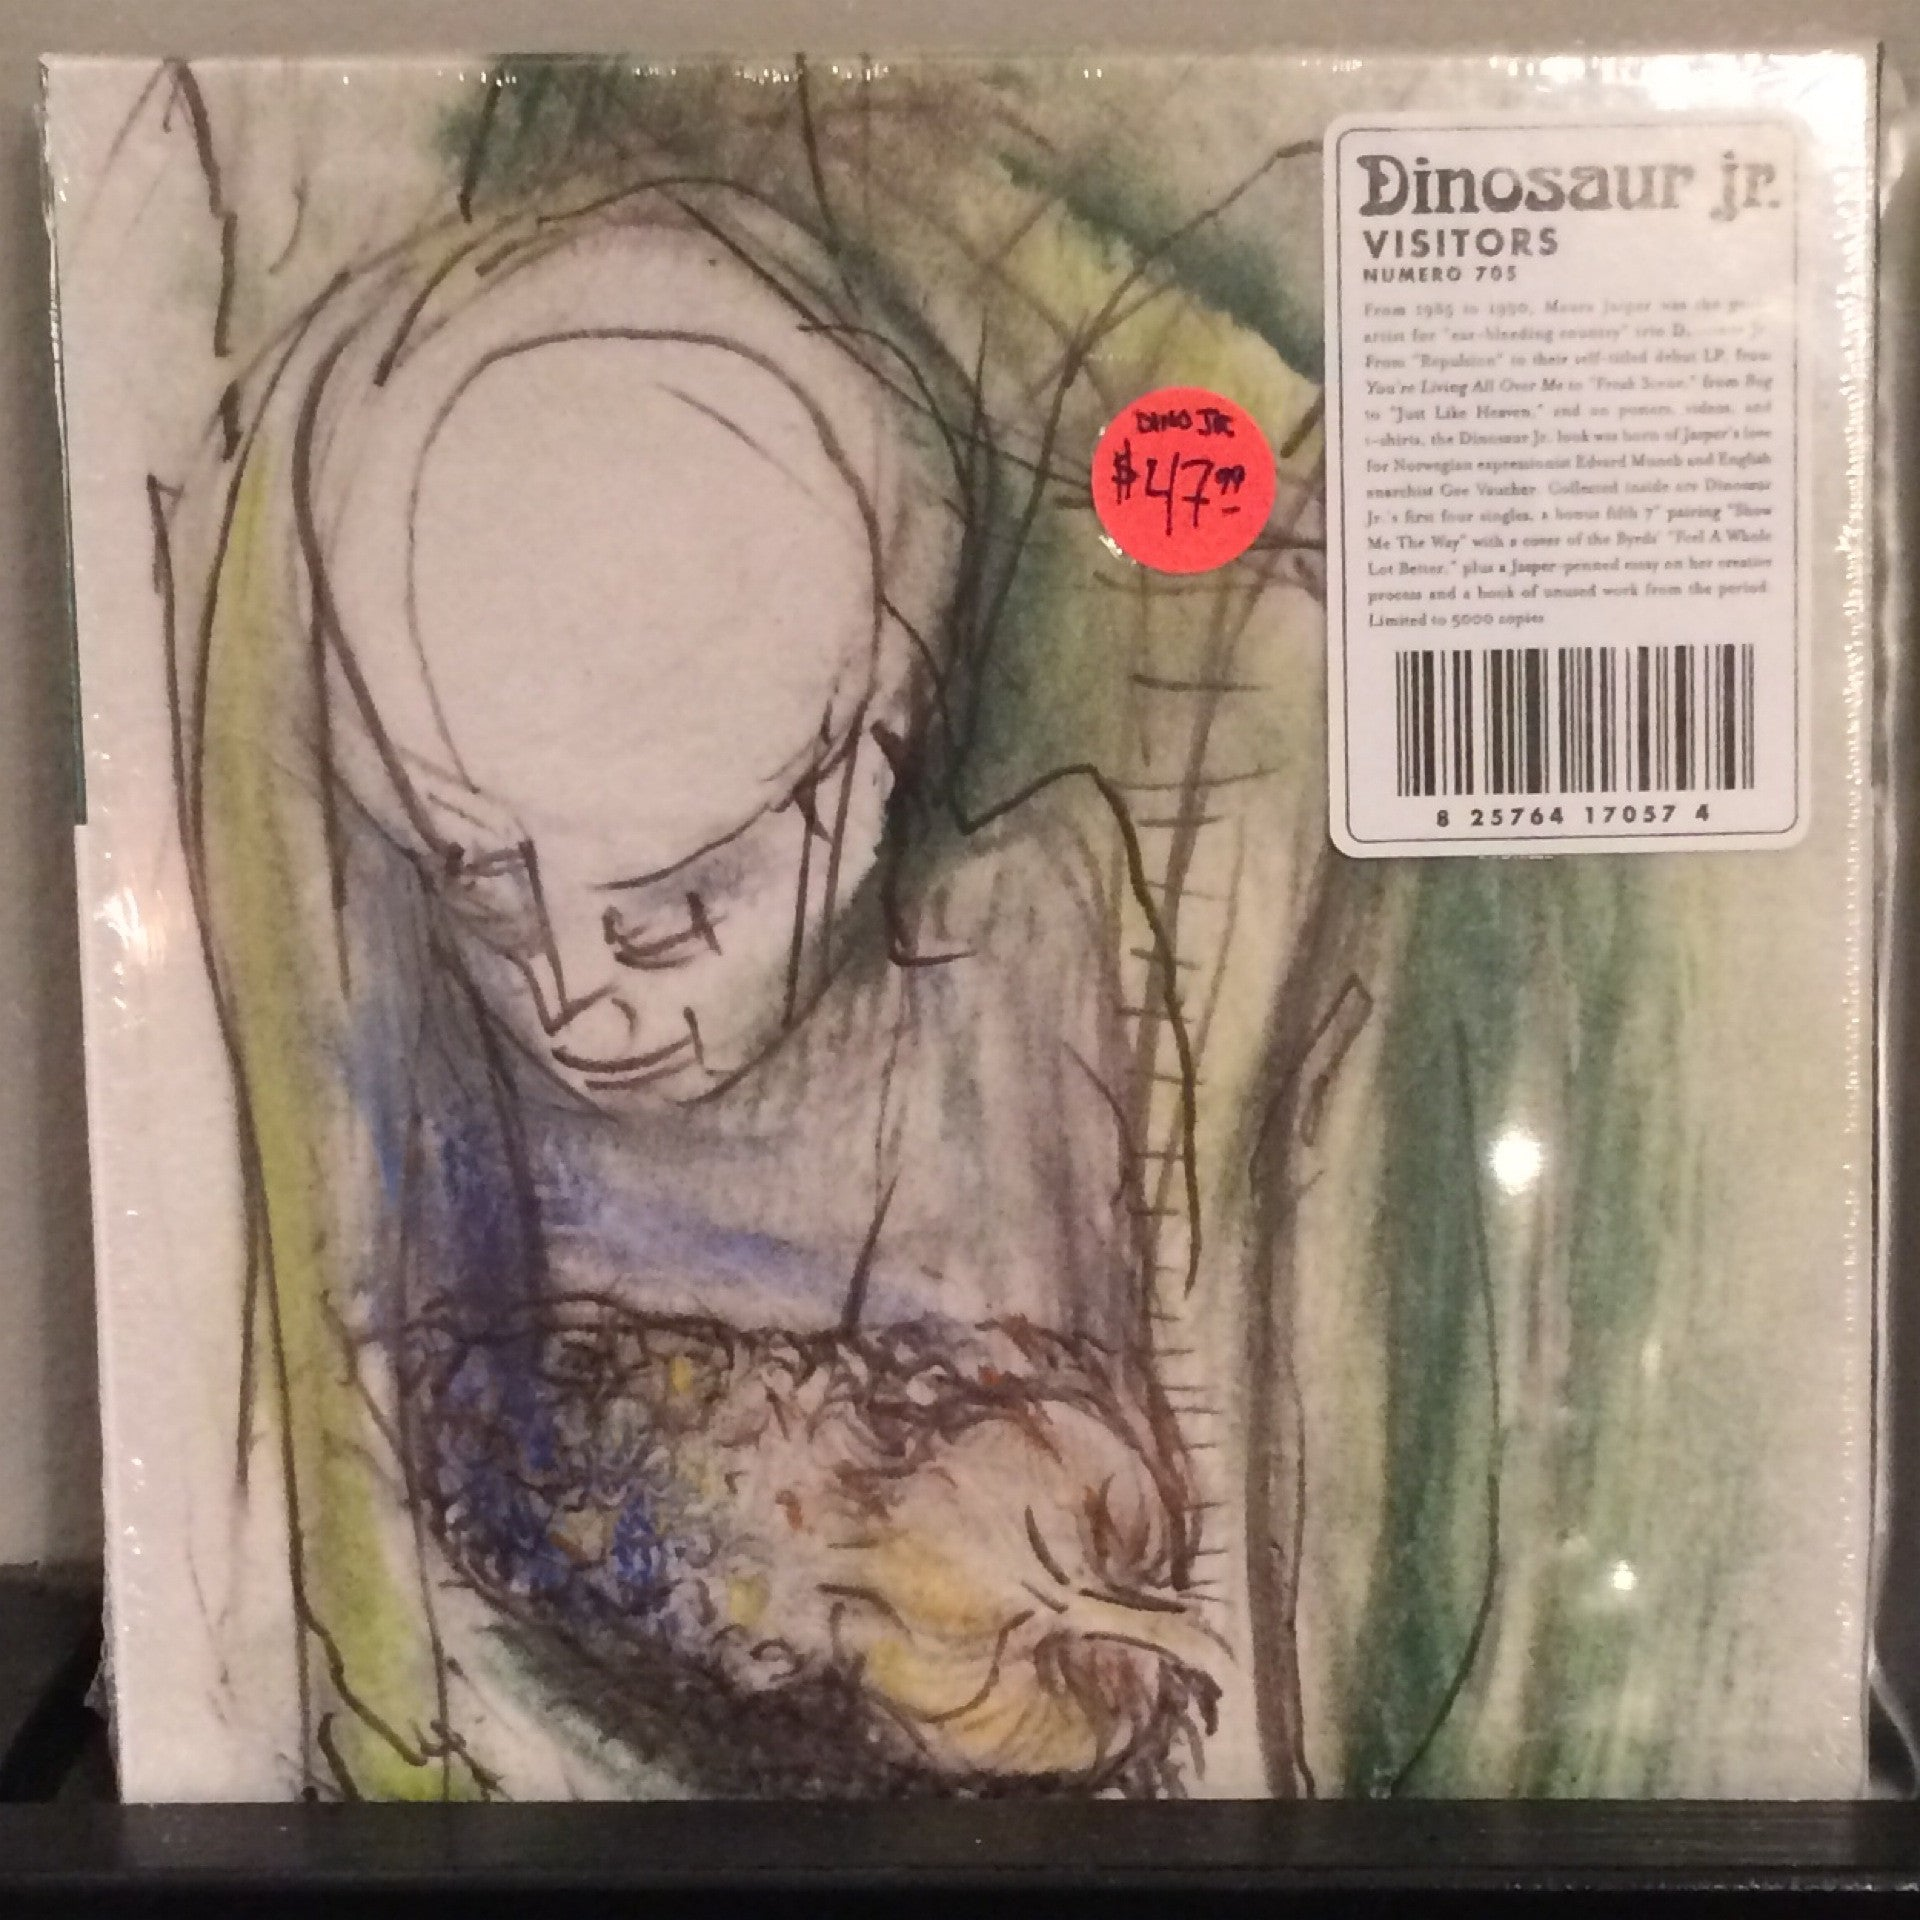 "Dinosaur Jr - Visitors 7"" Single Box Set - First 4 Singles And A Bonus Cover Single - RSD 2014 New/Sealed"